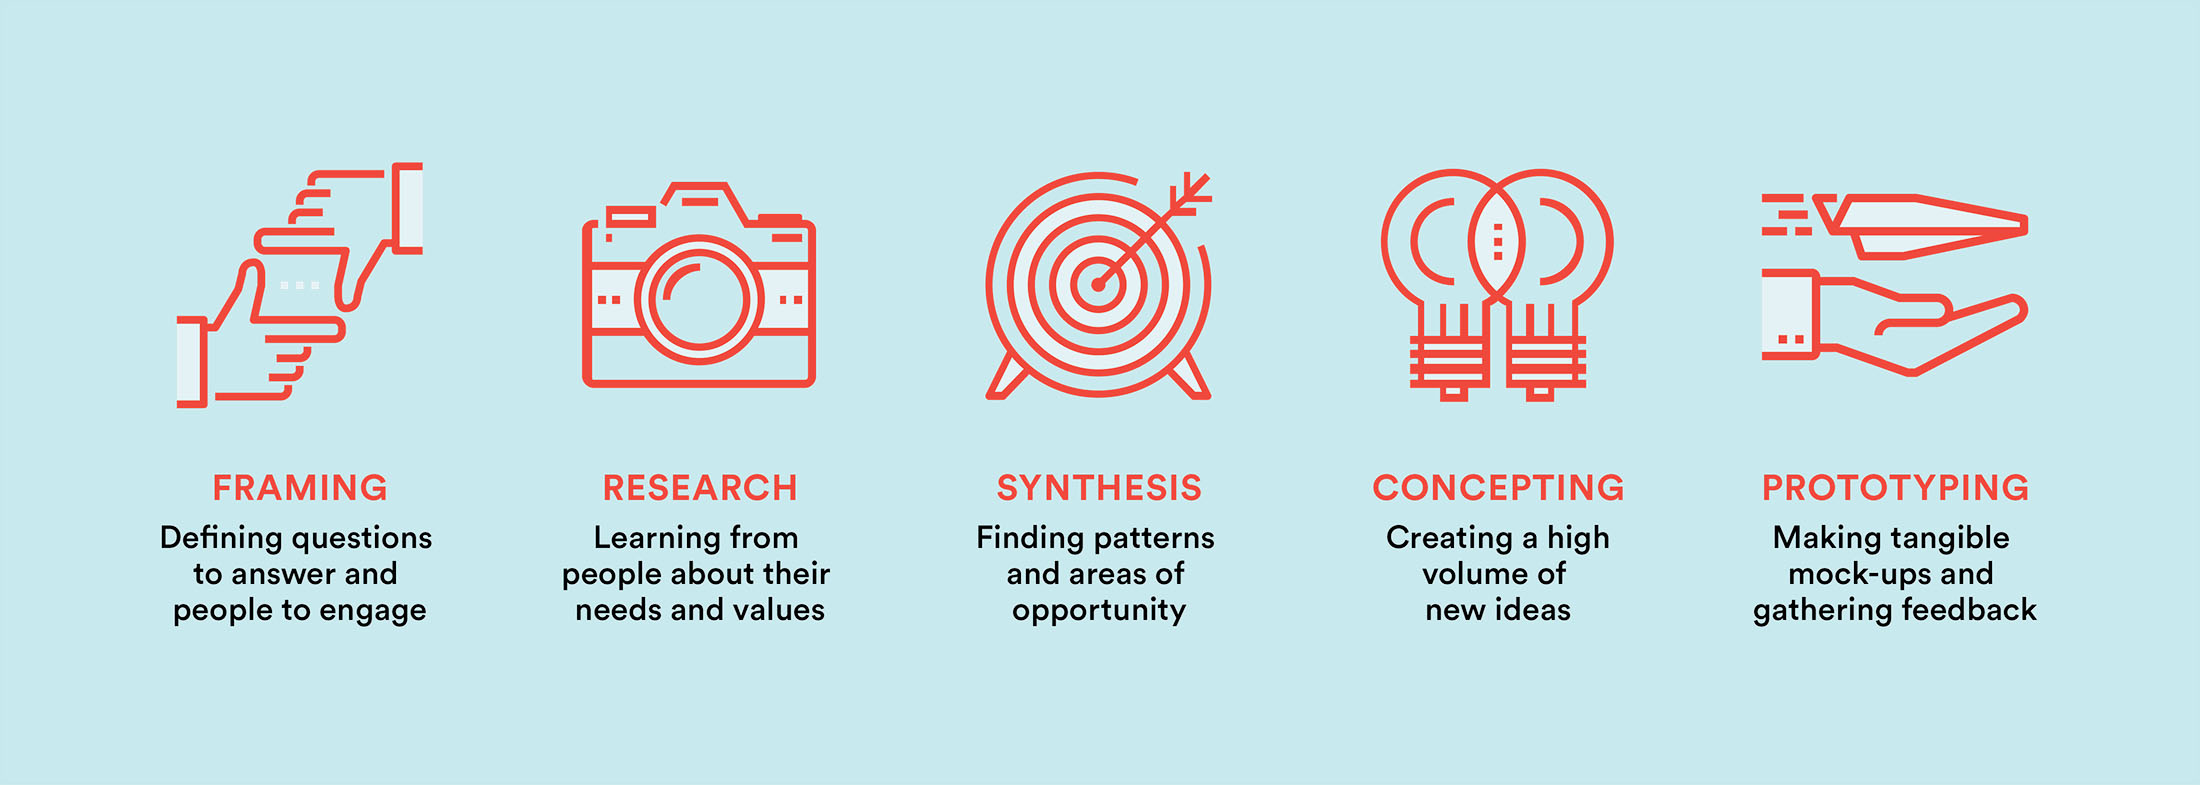 The Human Centered Design Process Greater Good Studio